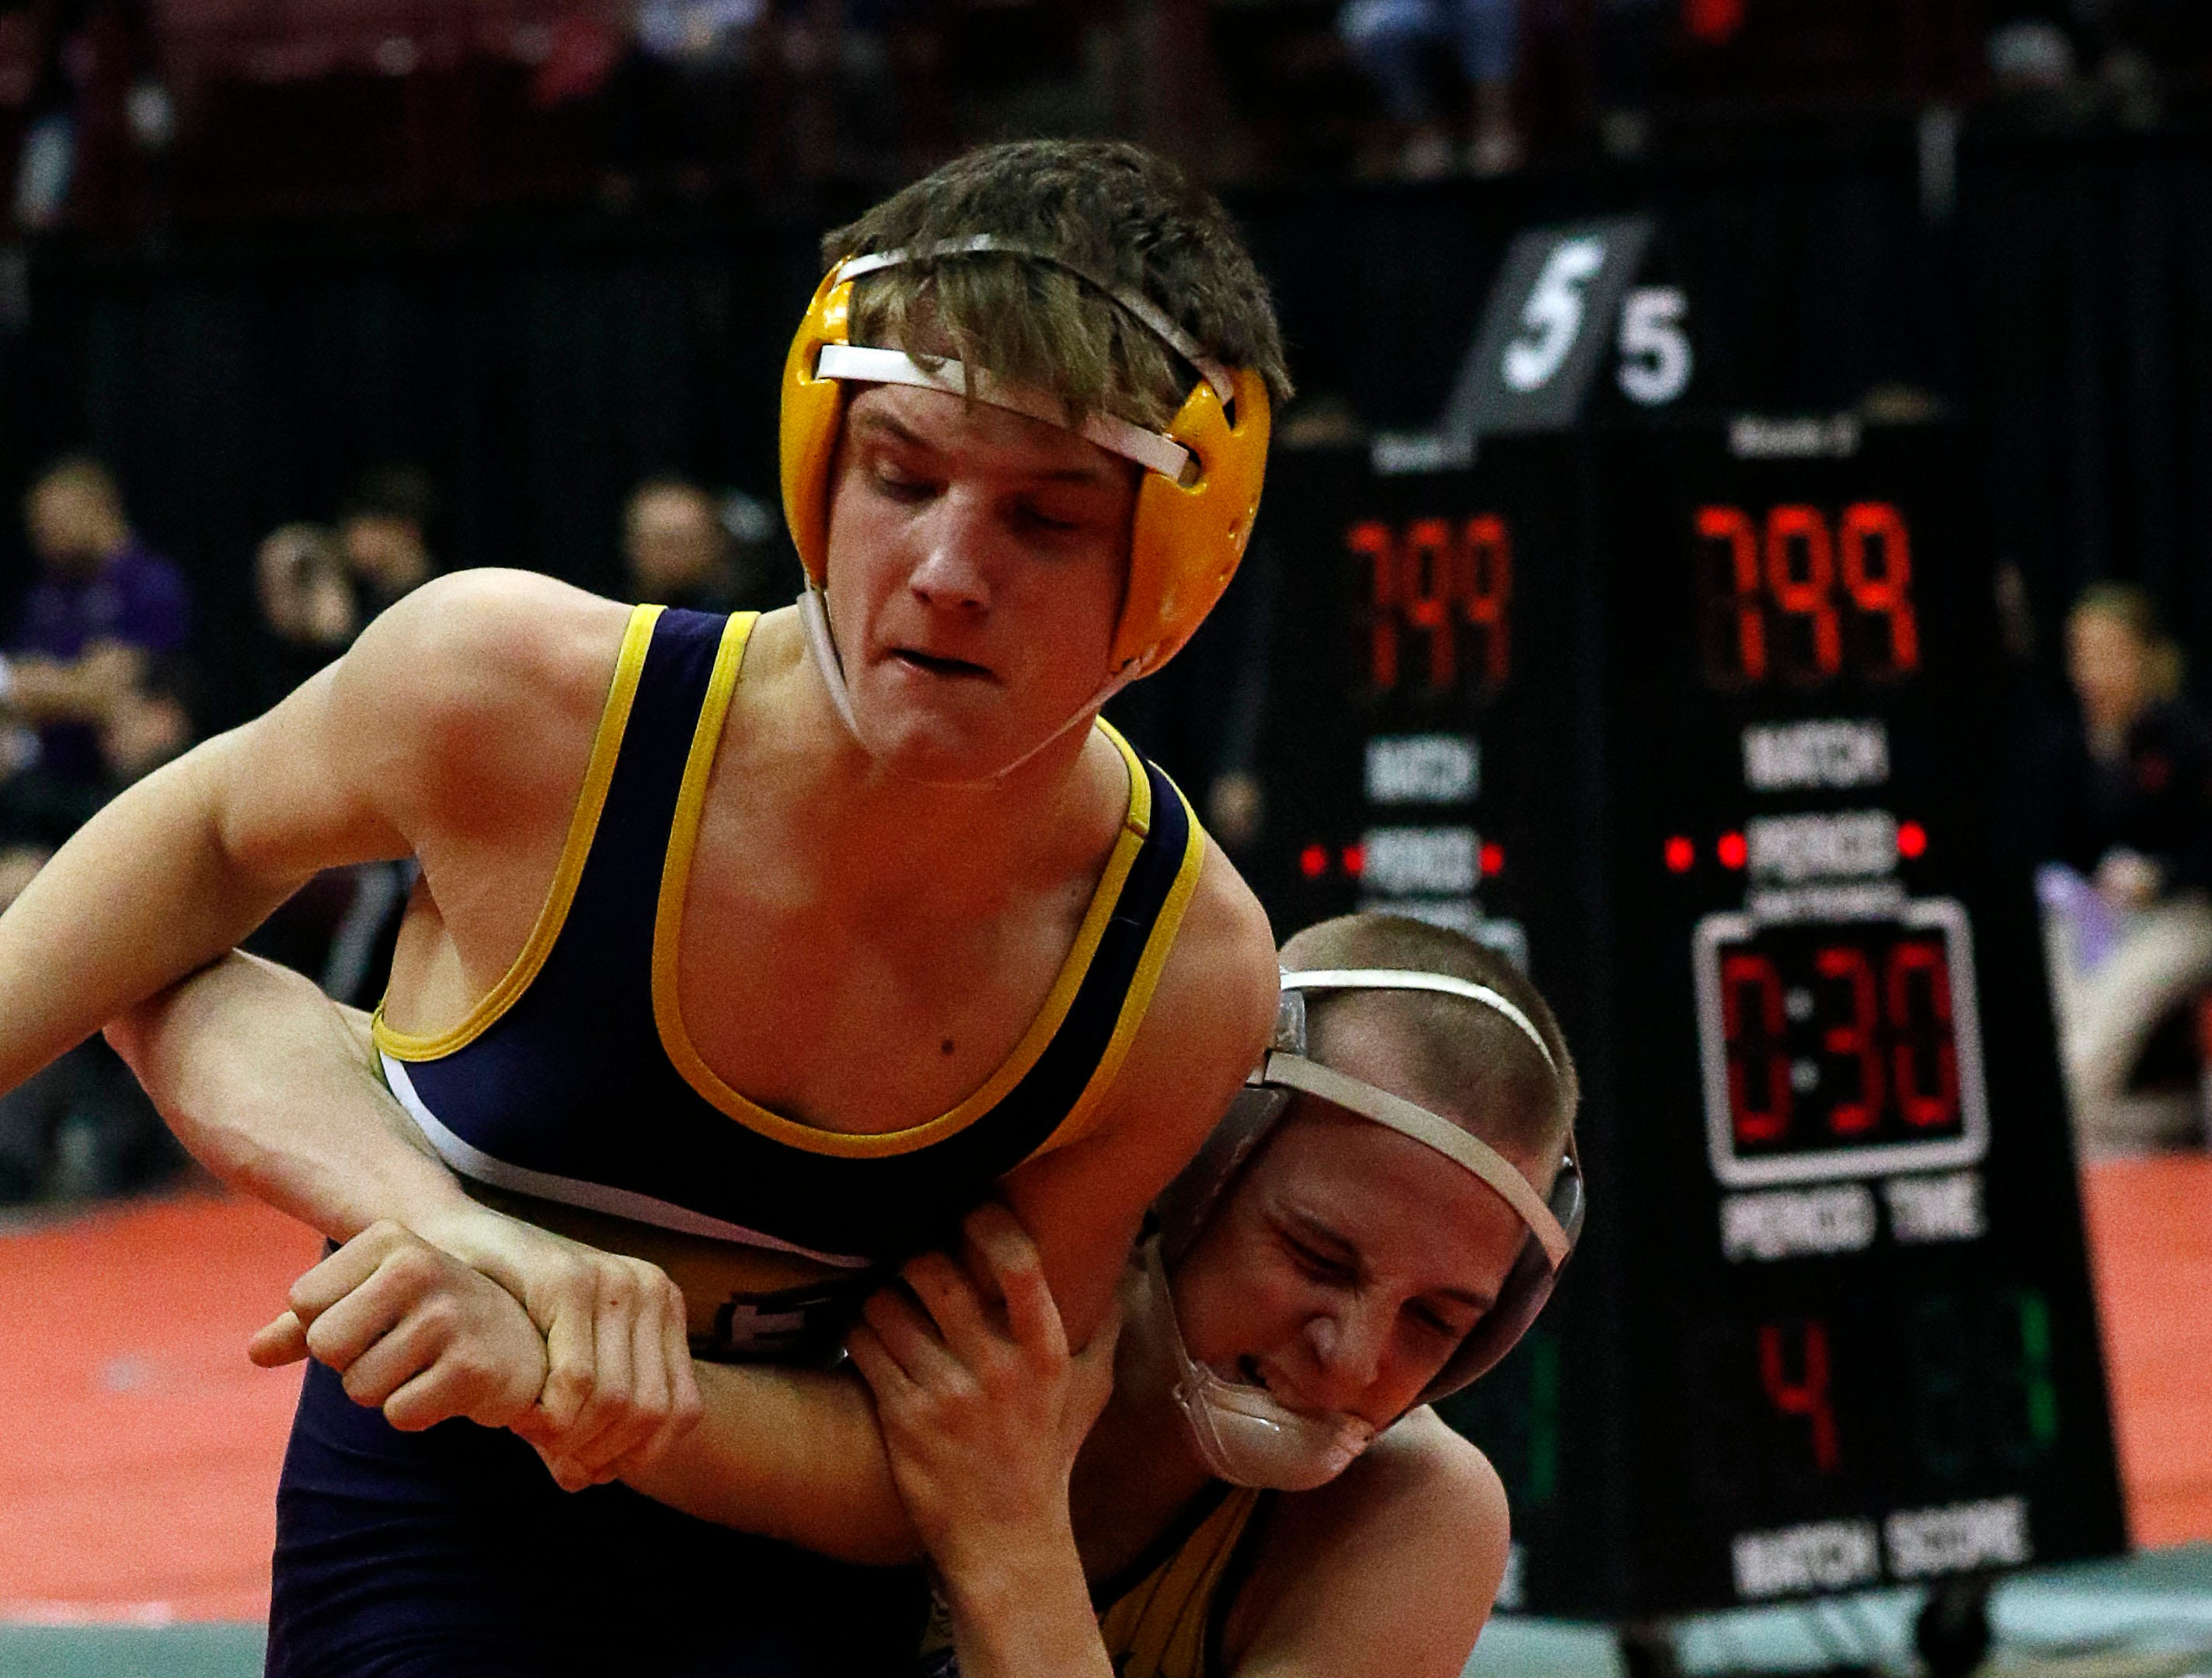 Lancaster's Jacob Reed wrestles during a consolation round match Friday, March 8, 2019, during the State Wrestling Tournament at the Jerome Schottenstein Center at Ohio State University in Columbus.